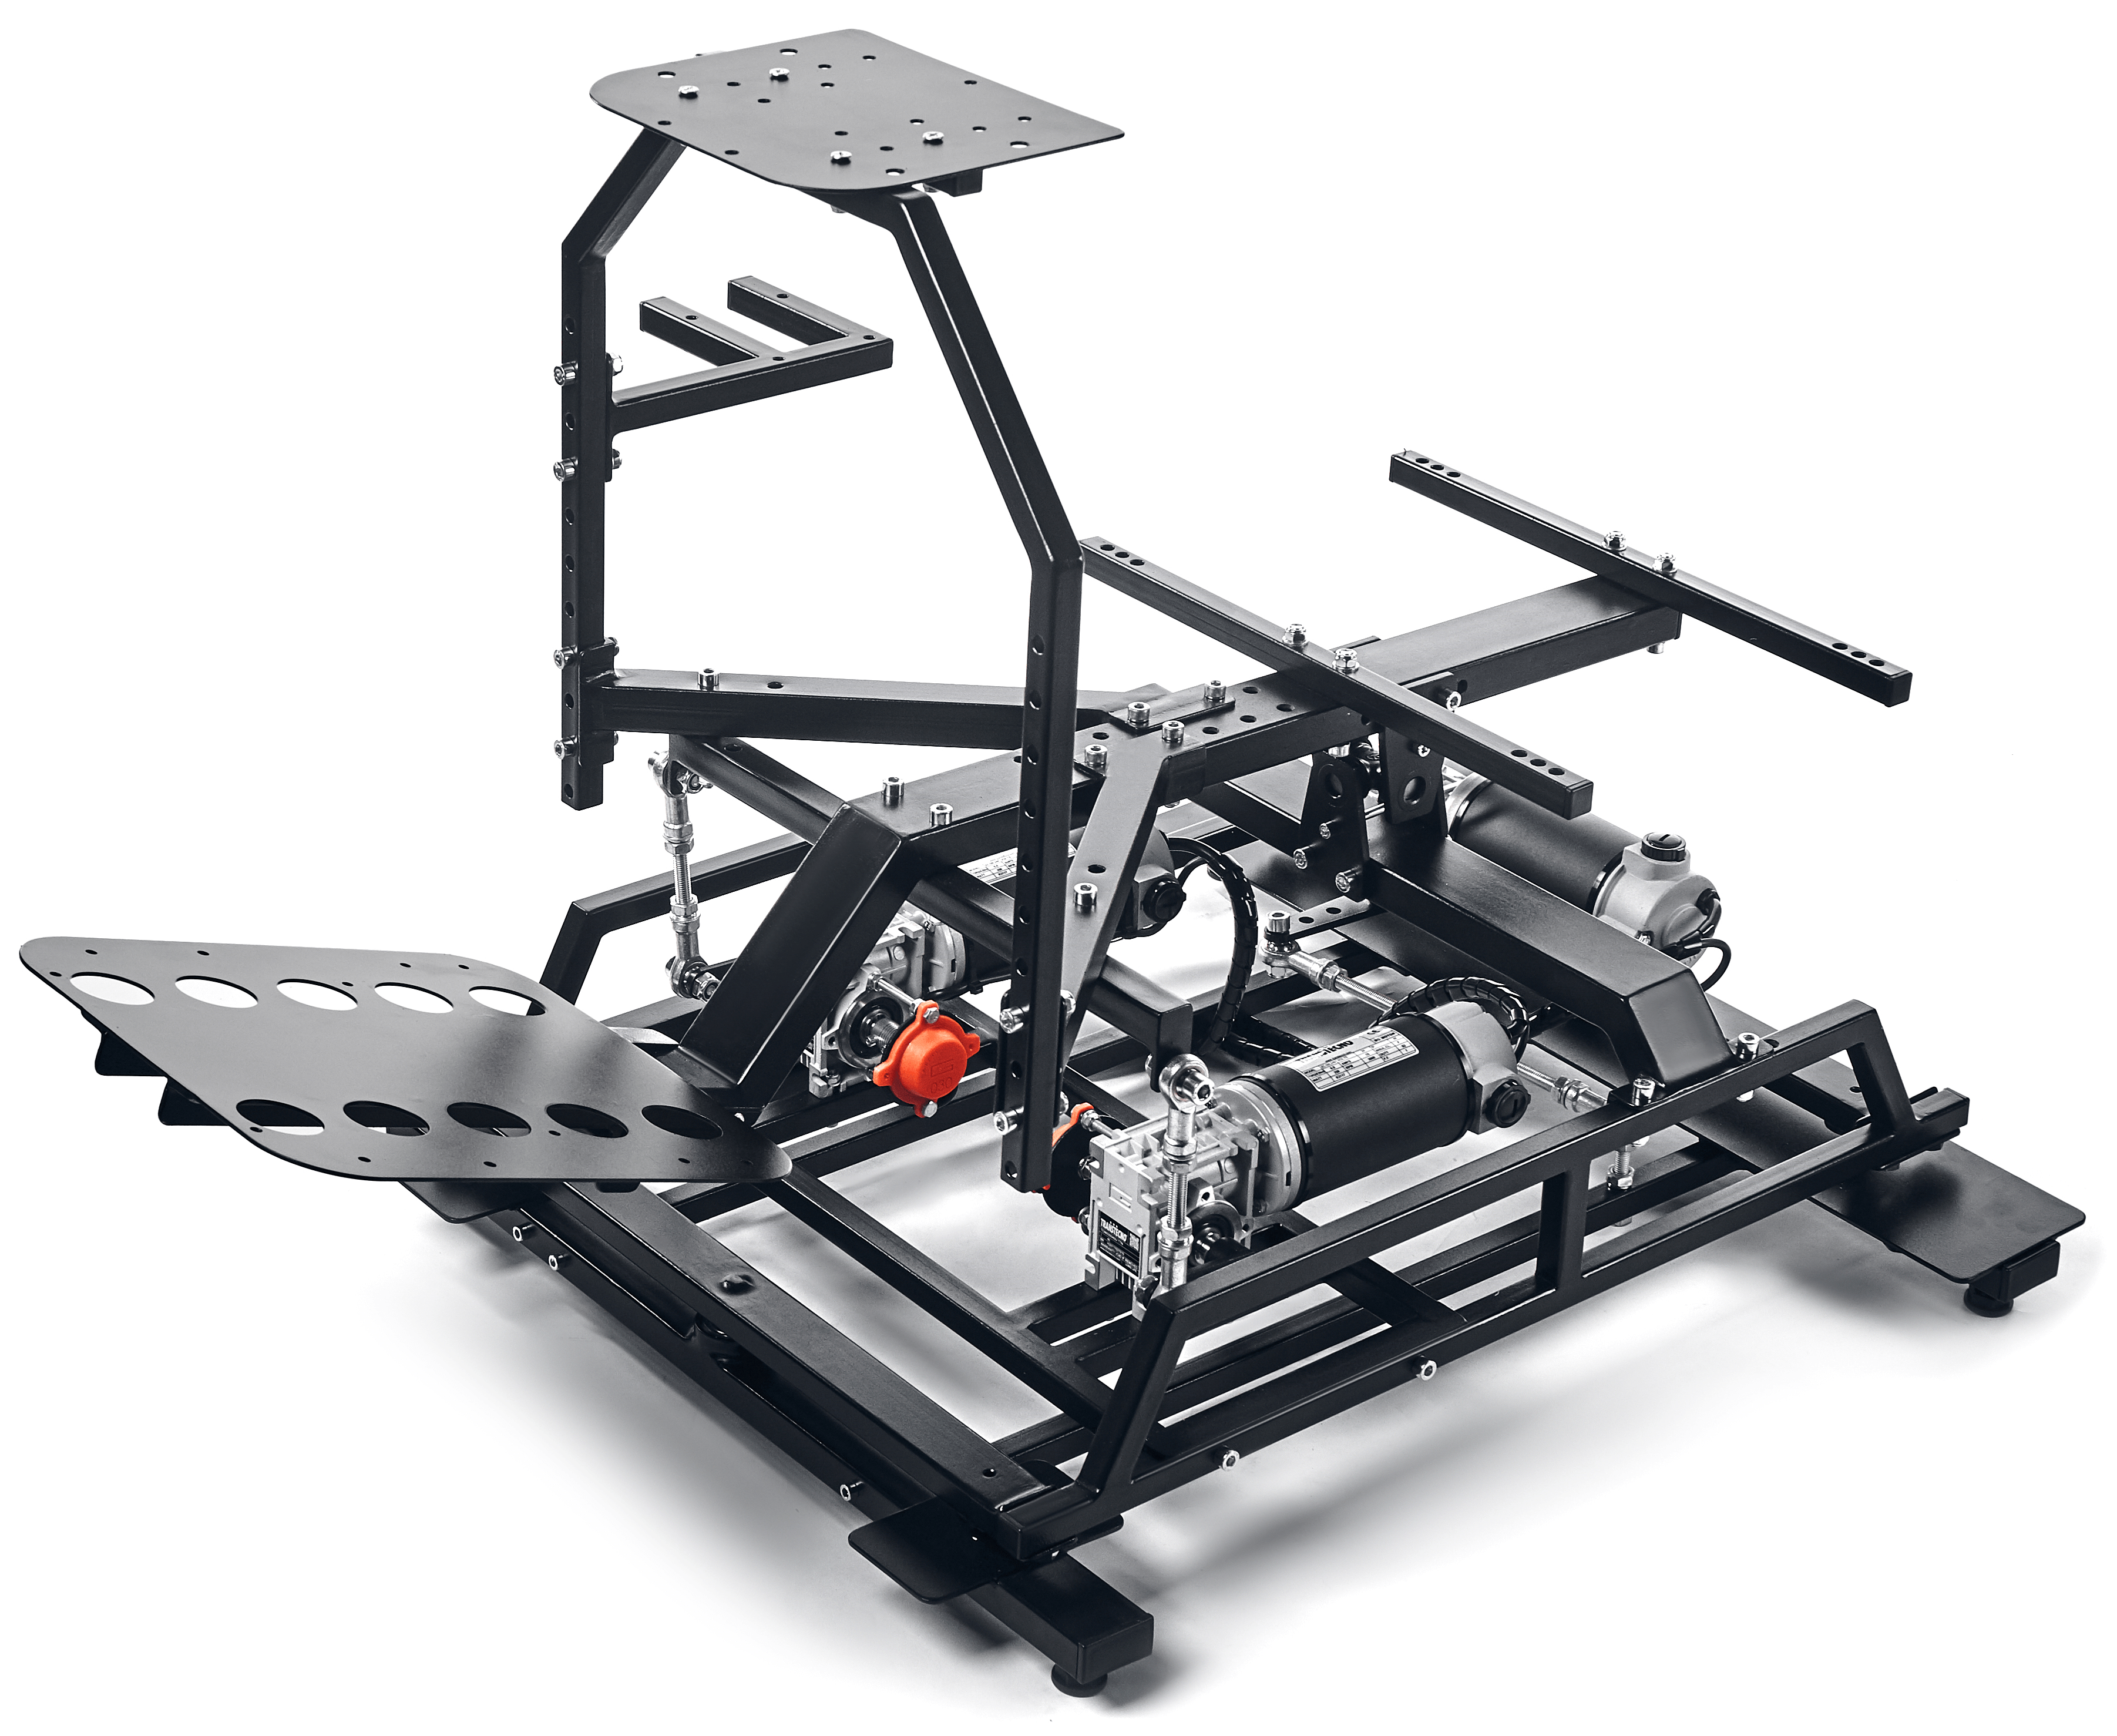 Full Motion Simulator 2,3,6 Axis Platforms for PC home